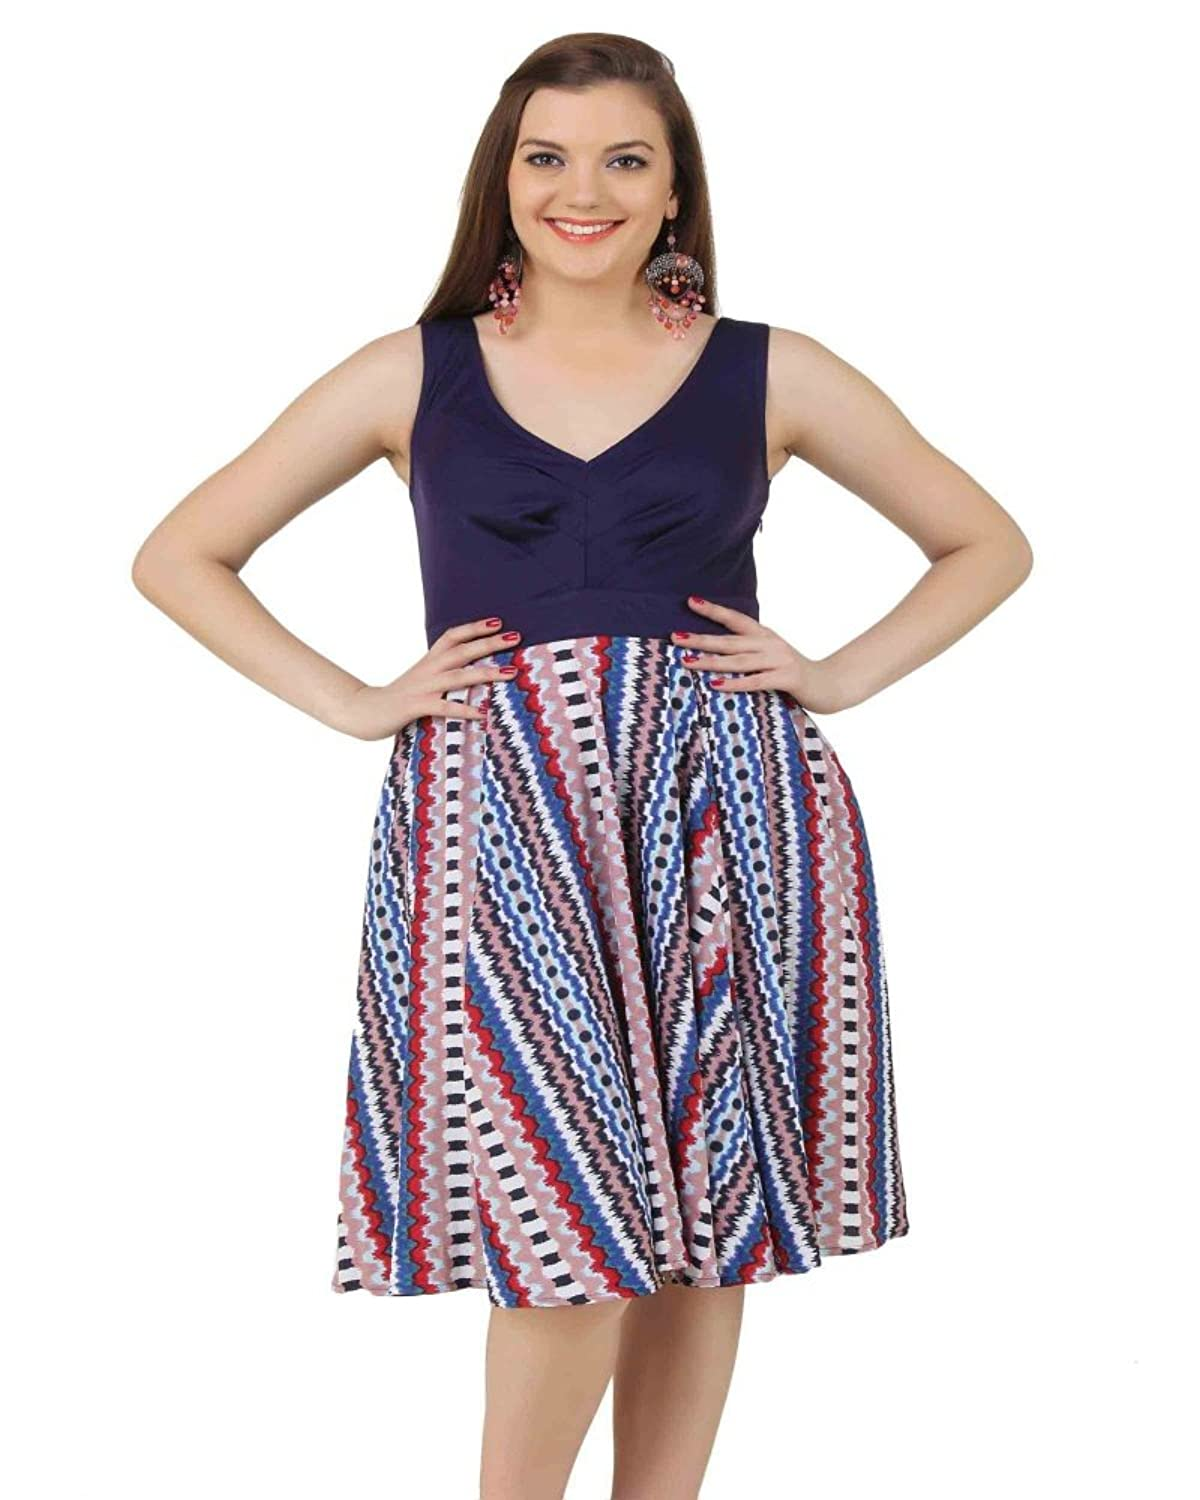 LoveURAPpearance Women's Harper Flared Dress - Regular and Plus Size